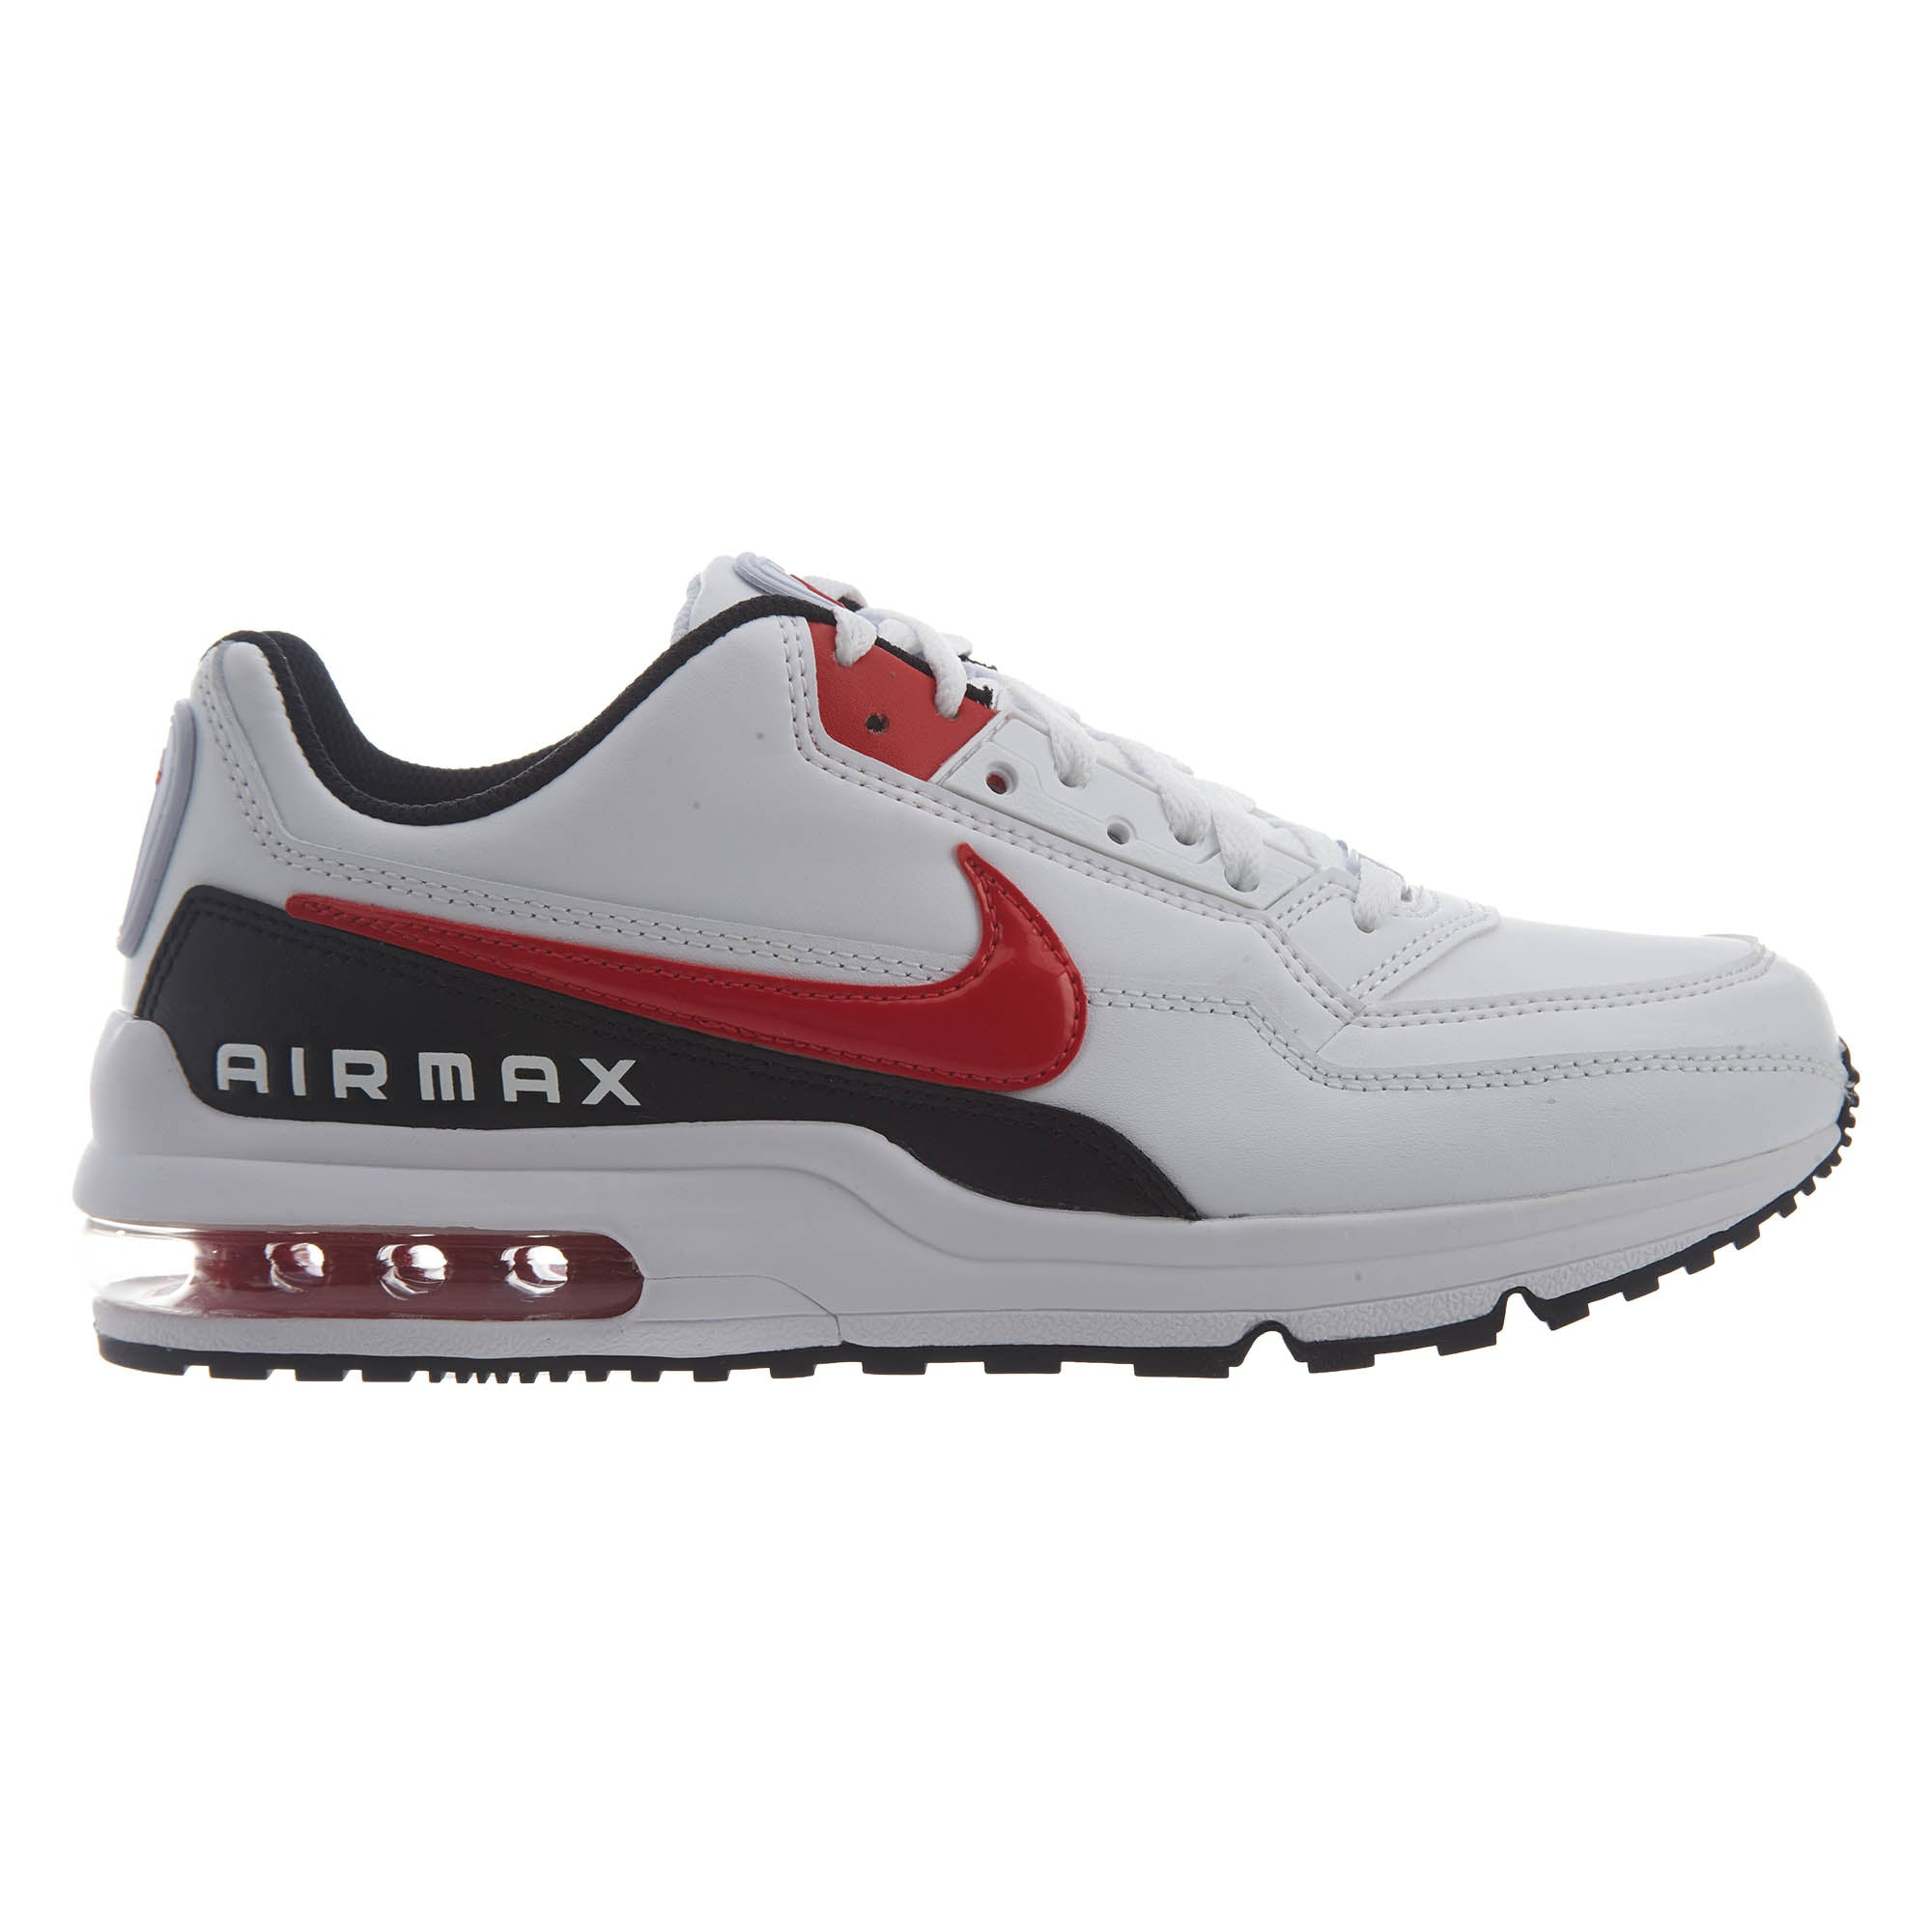 new arrival 35468 5358a Nike Air Max Ltd 3 Mens Style   Bv1171-100